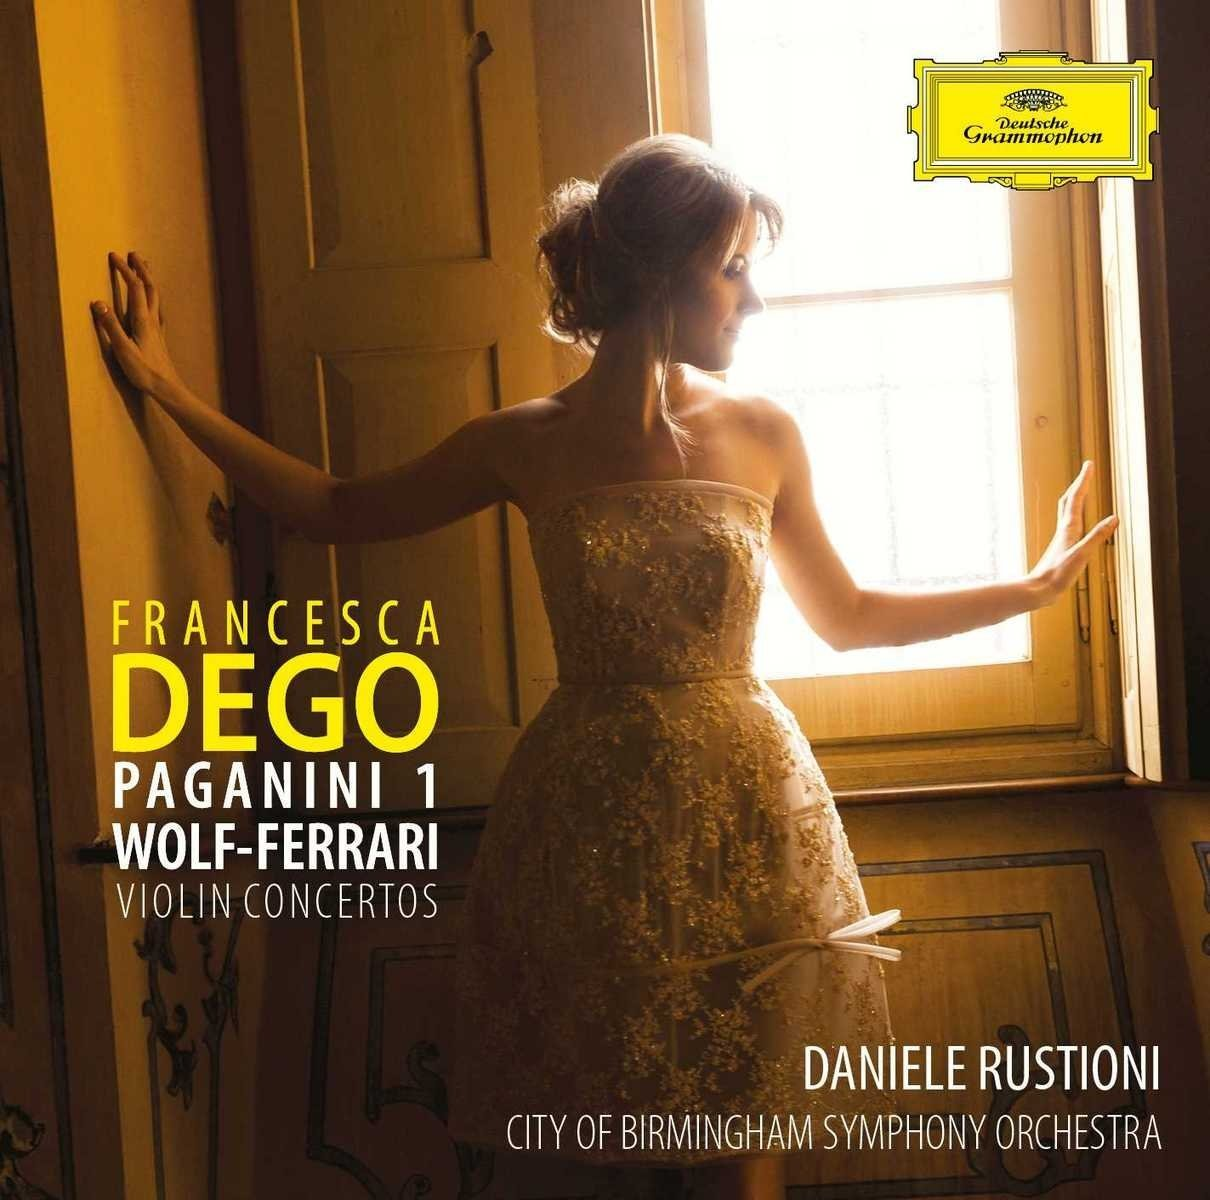 March 2018 RECORDING OF THE MONTH: Niccolò Paganini & Ermanno Wolf-Ferrari - VIOLIN CONCERTOS (Deutsche Grammophon 481 6381)